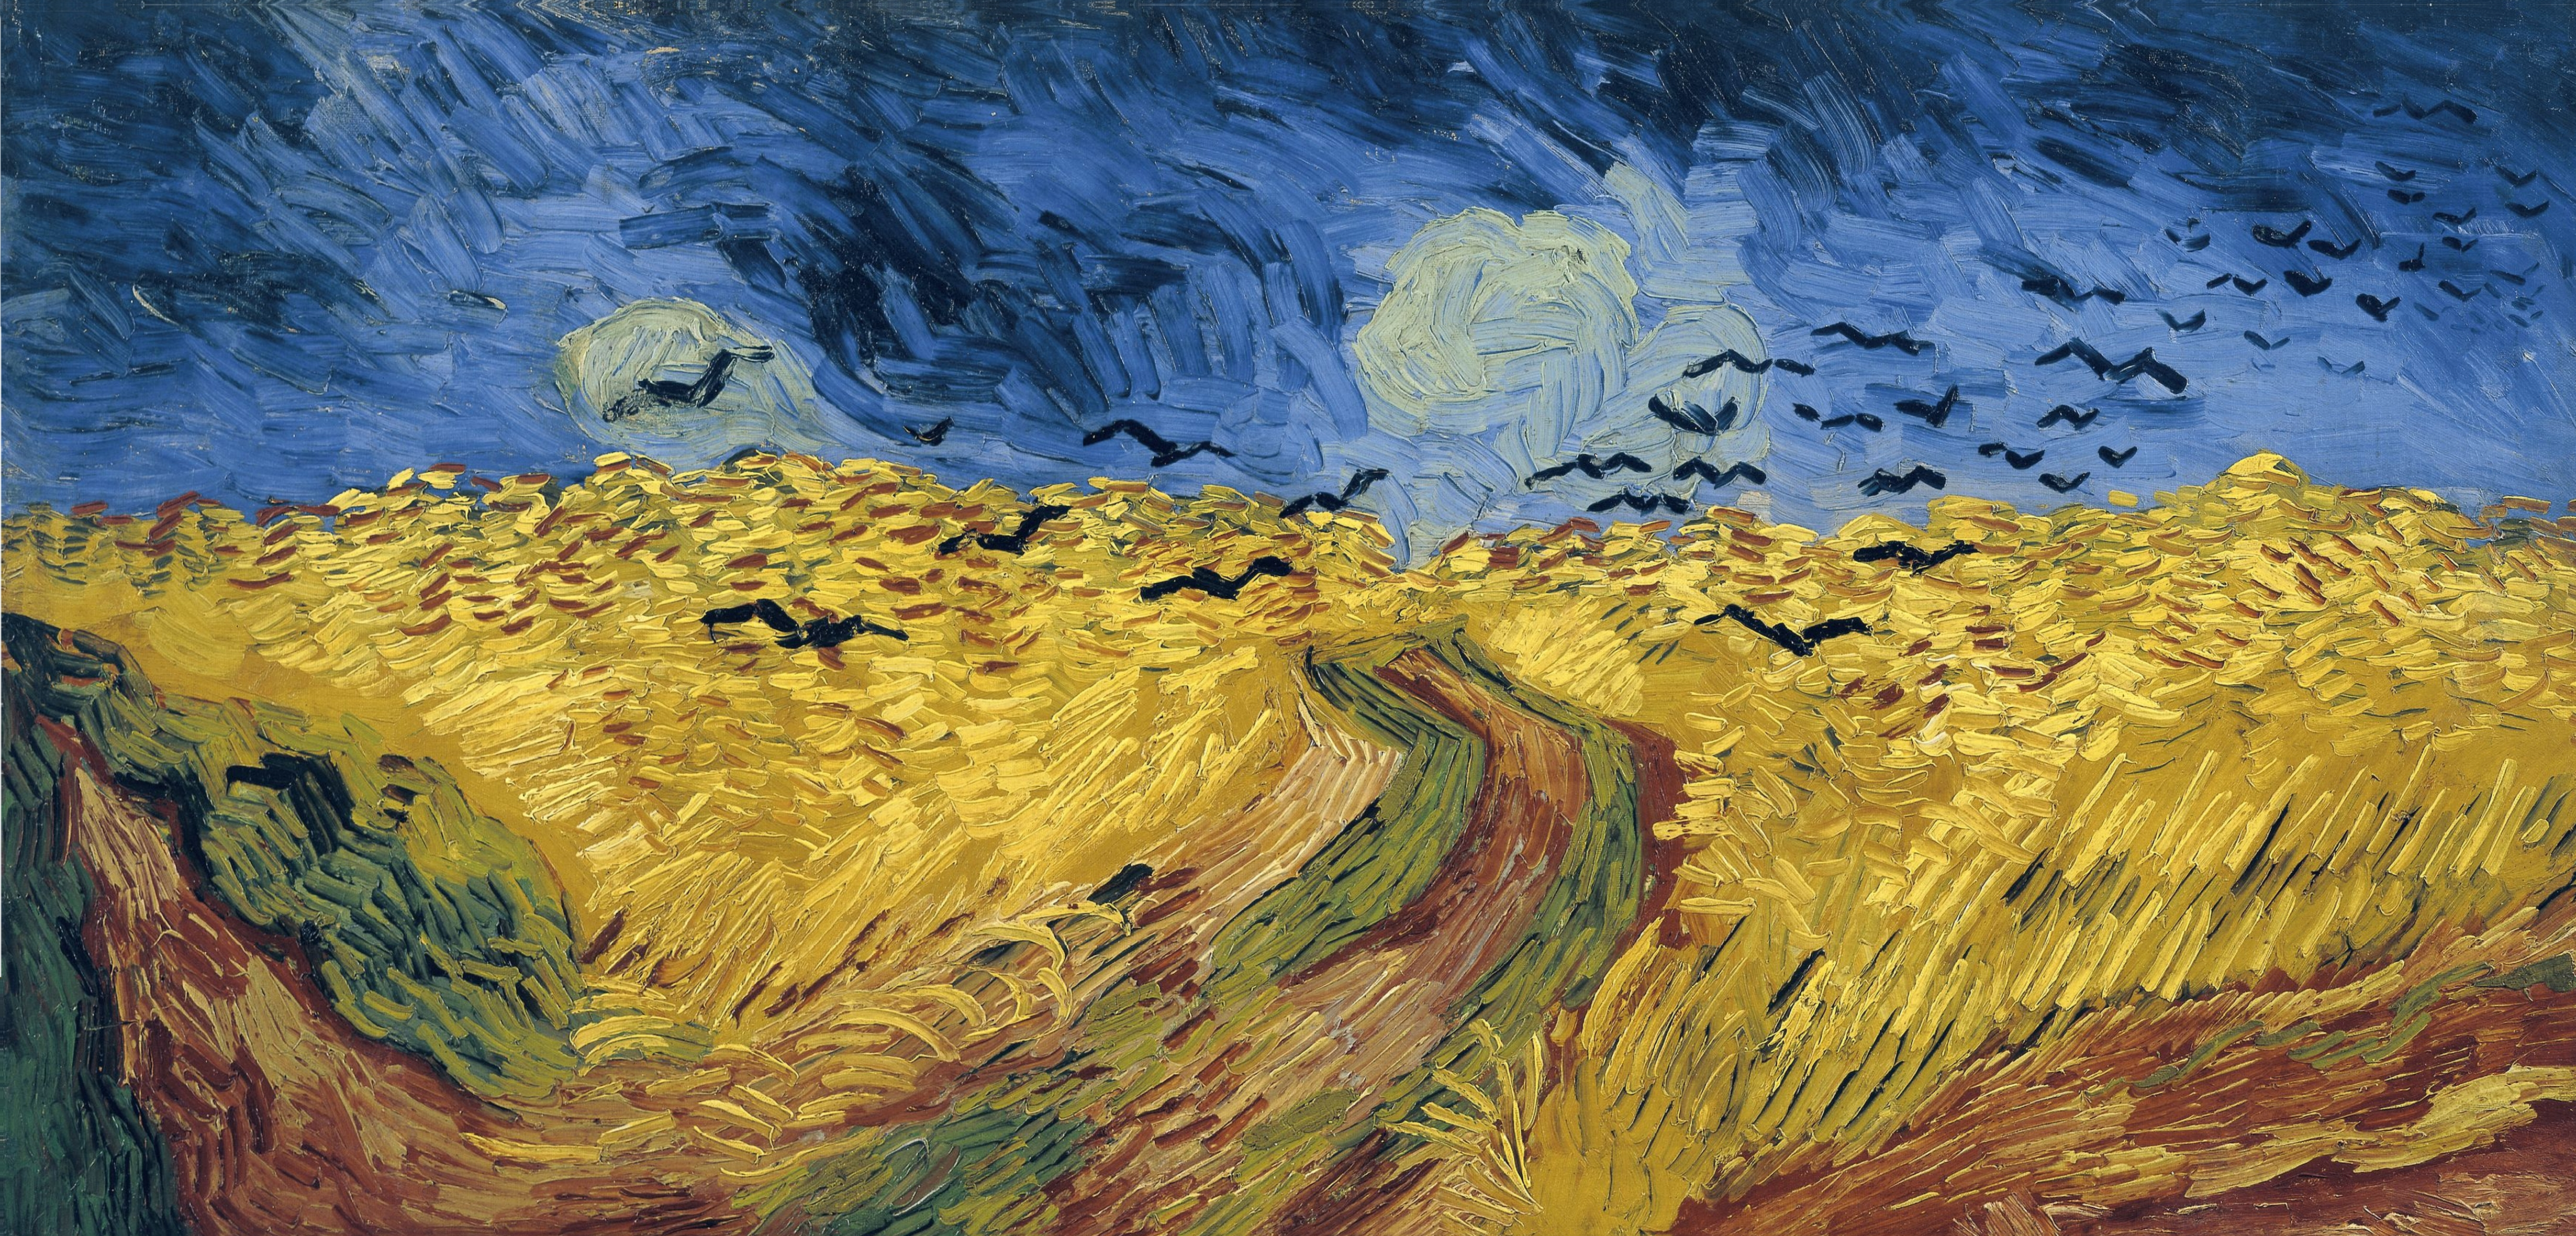 https://upload.wikimedia.org/wikipedia/commons/8/86/Van_Gogh%2C_Wheatfield_with_crows.jpg